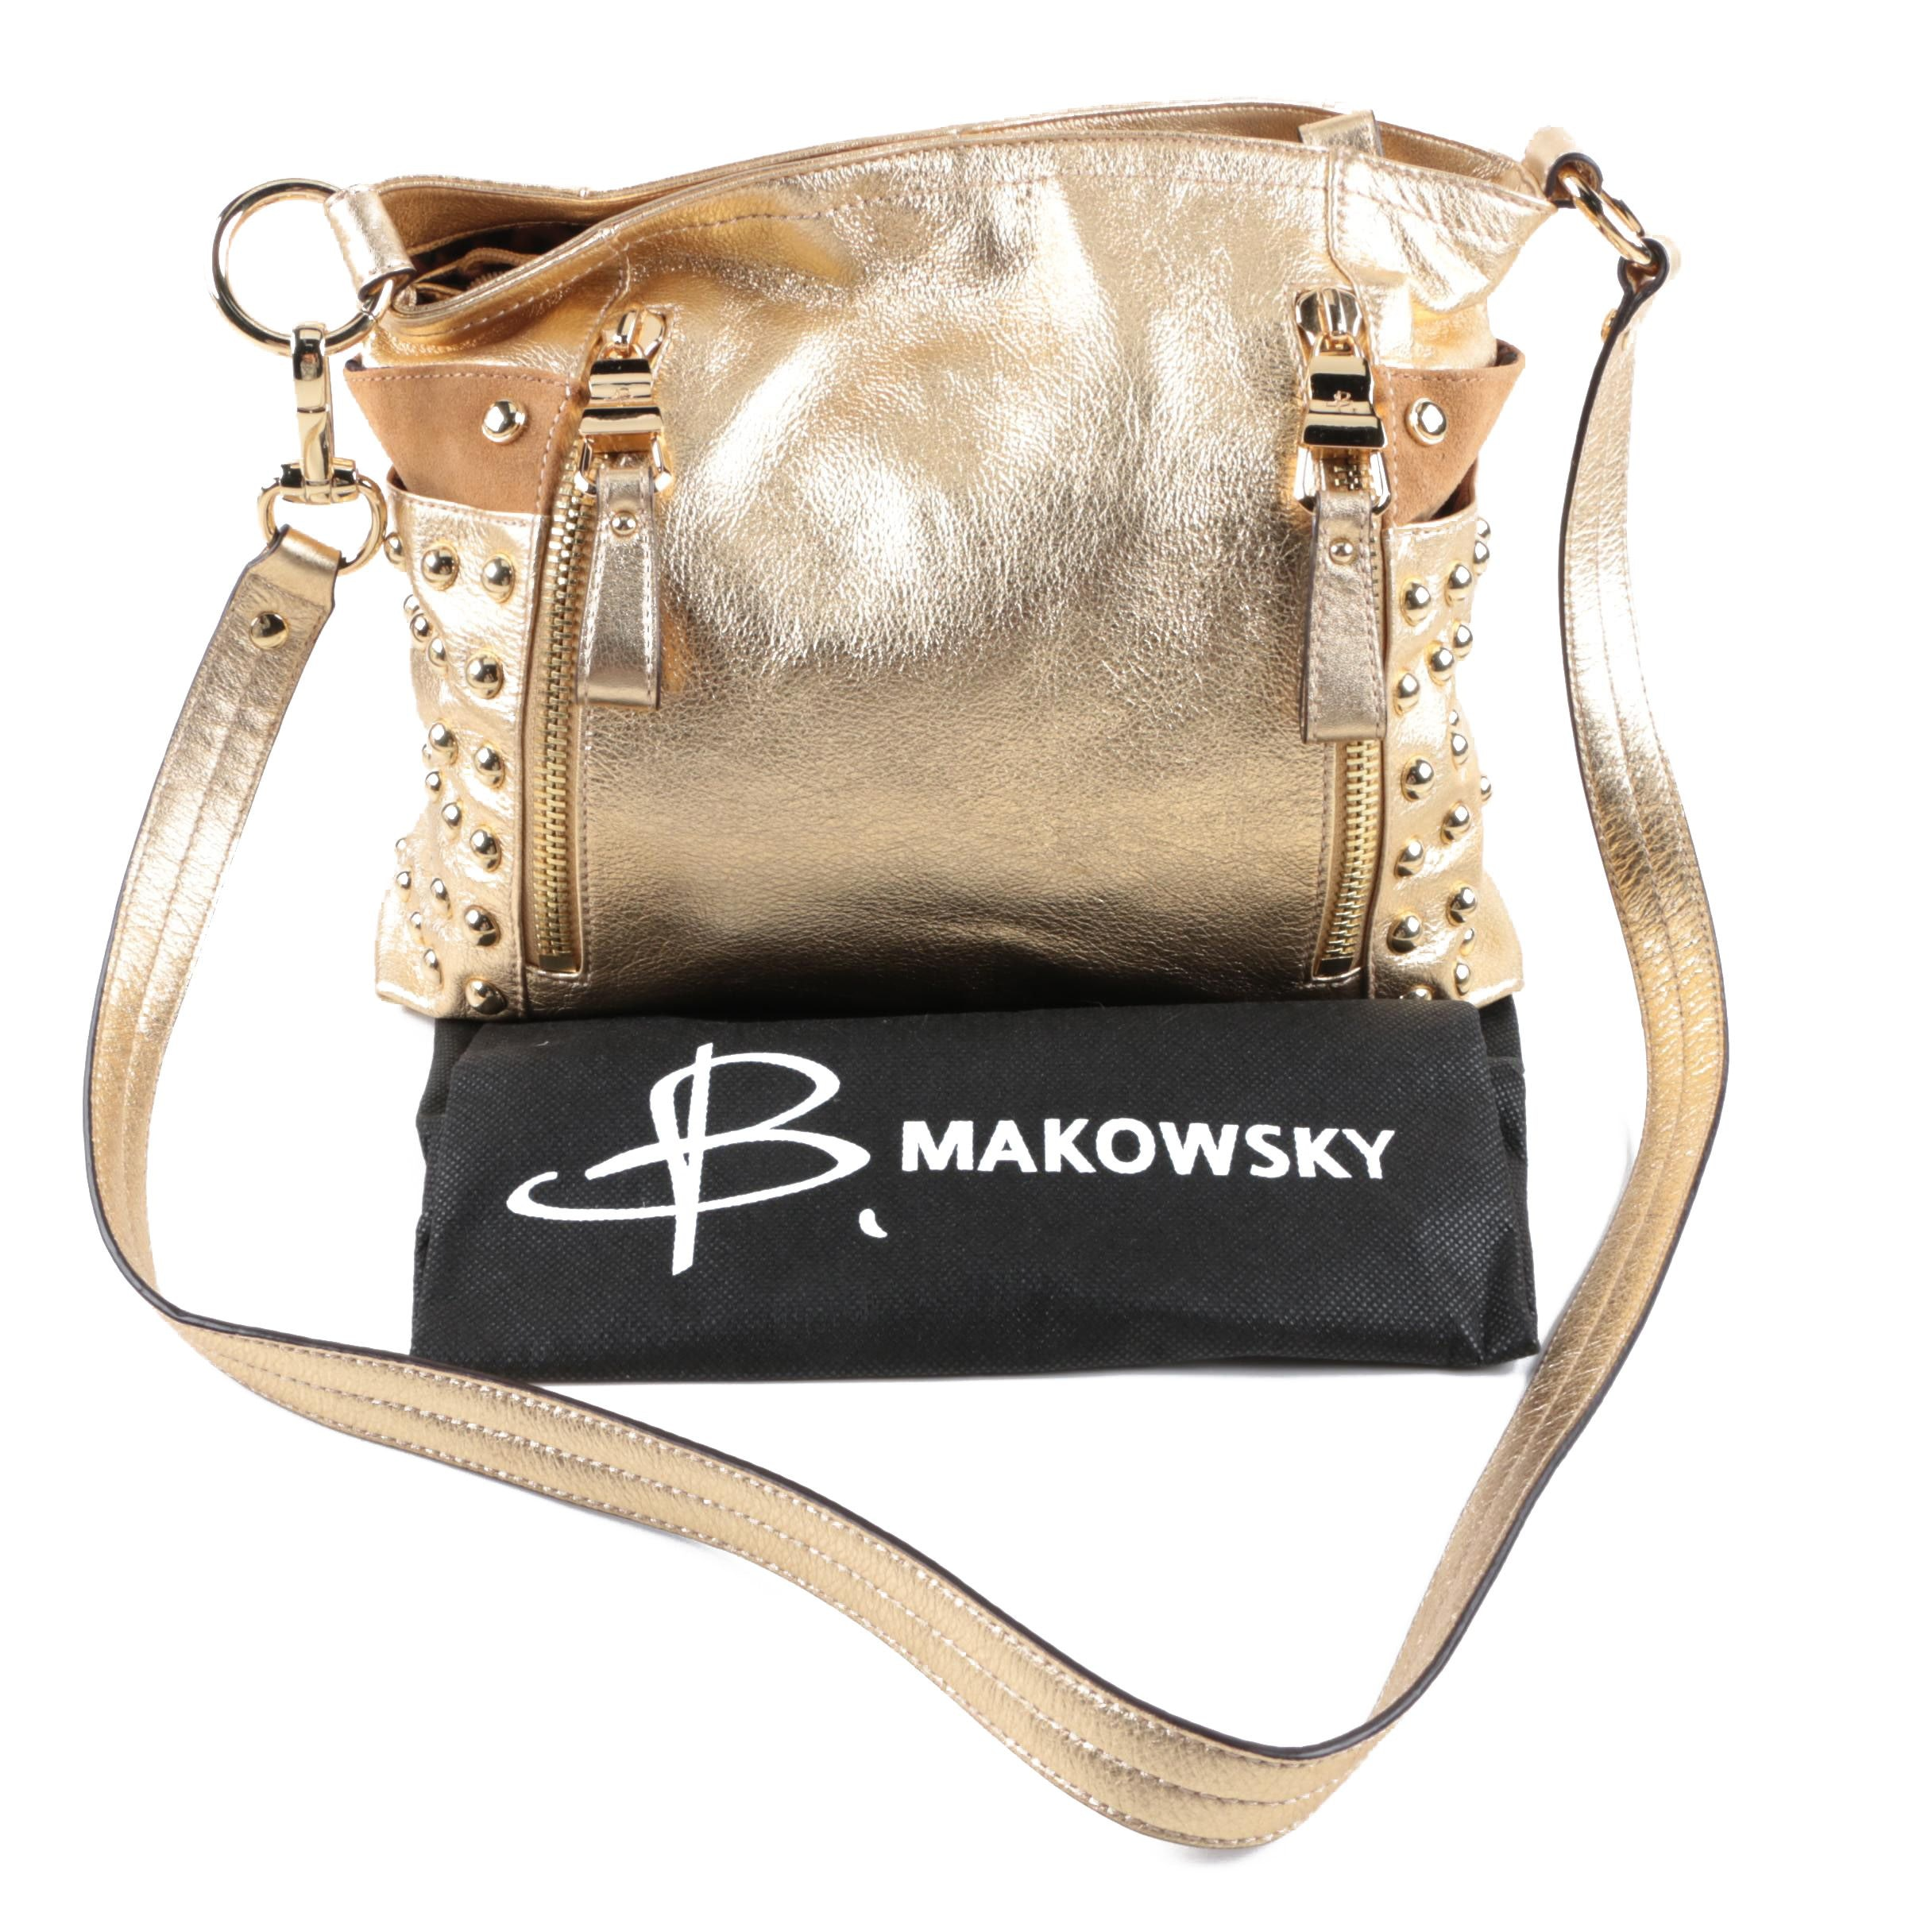 B. Makowsky Metallic Gold Leather Satchel